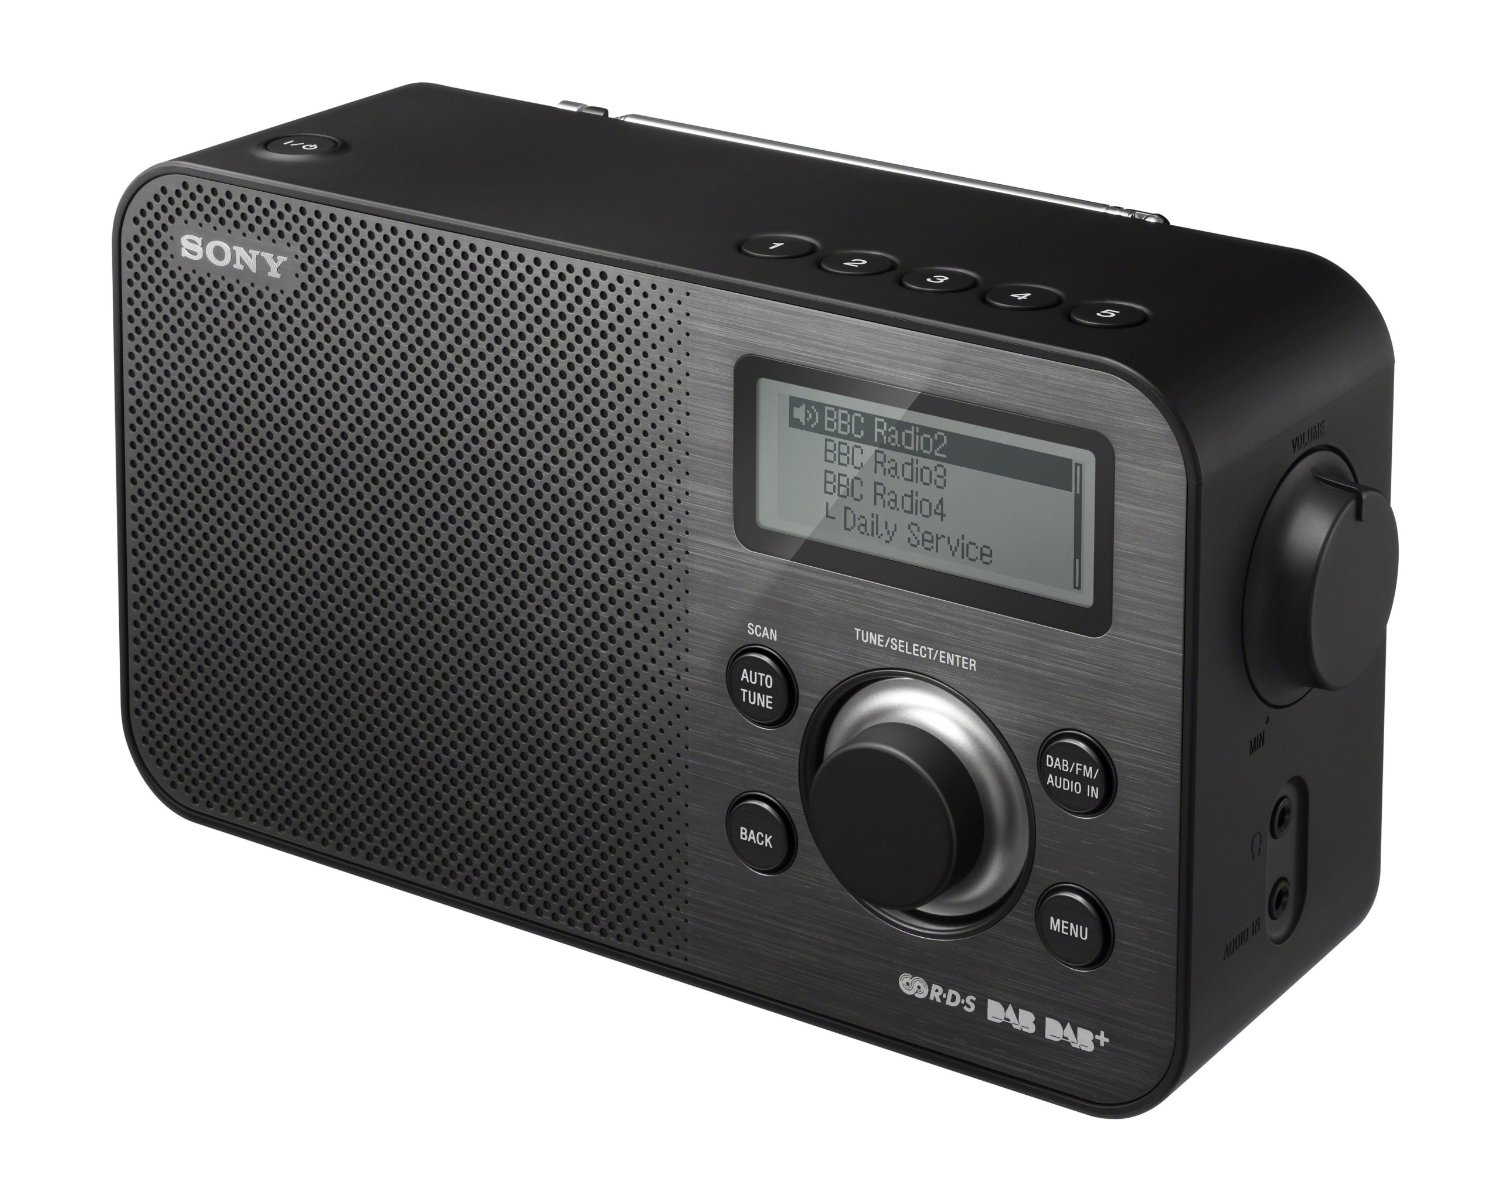 sony xdrs60 retro design dab radio with dab dab fm tuner. Black Bedroom Furniture Sets. Home Design Ideas